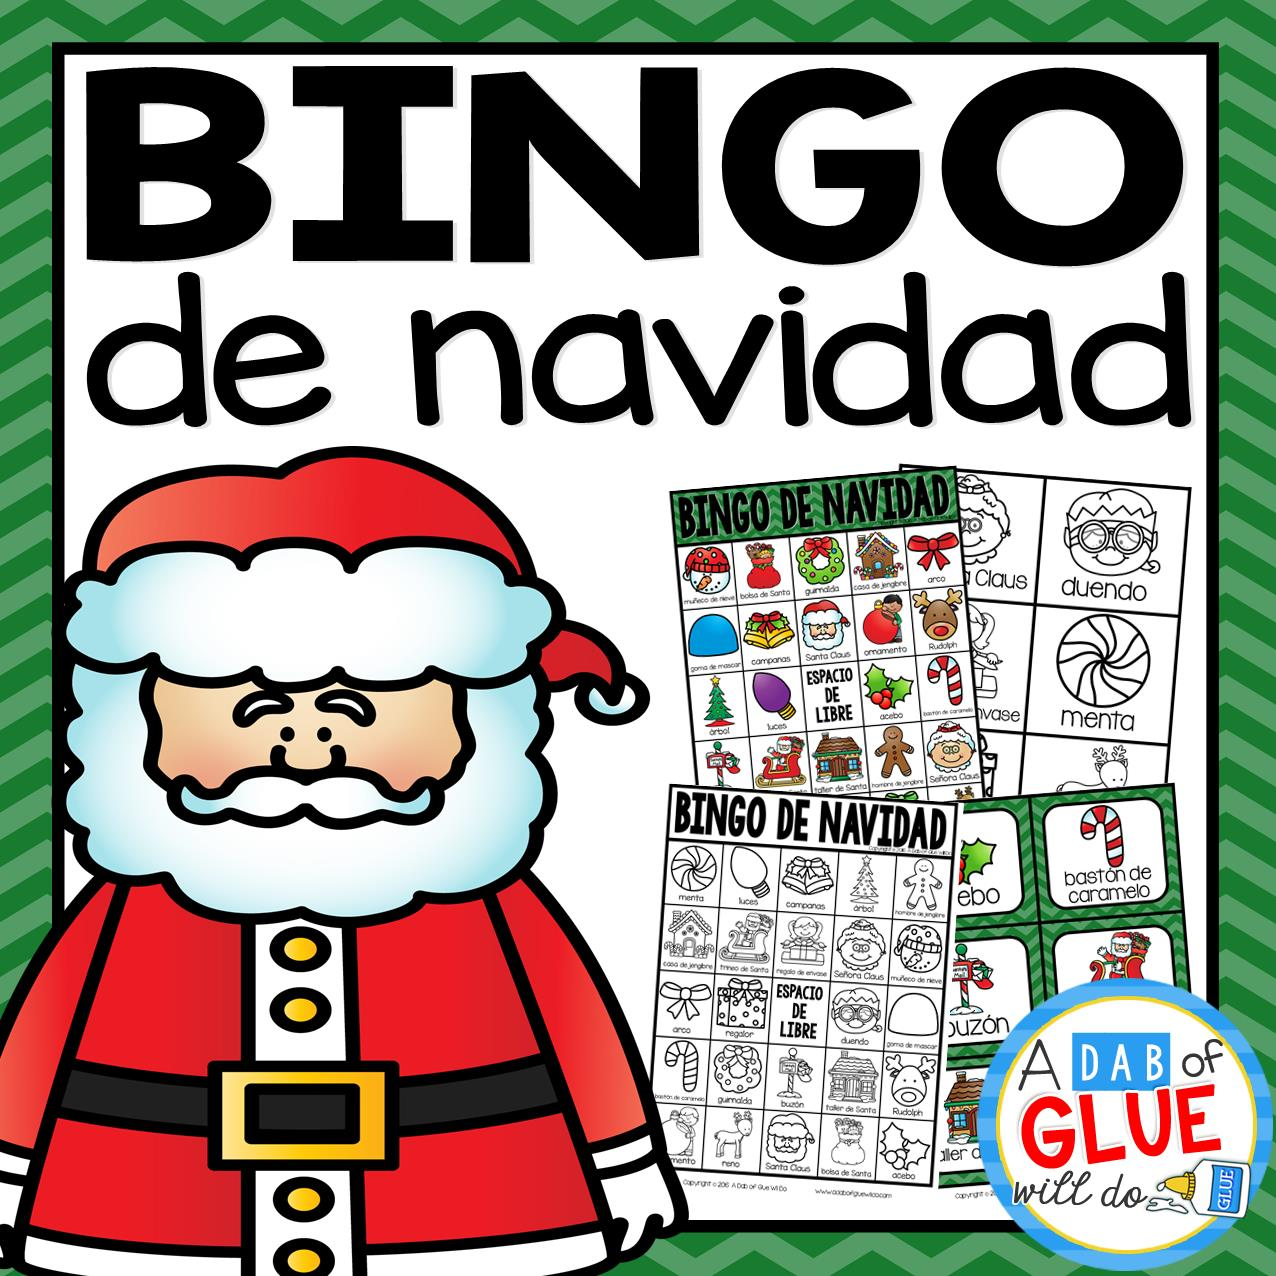 Play Bingo with your elementary age students for a fun Christmas themed game in Spanish! Perfect for large groups in your classroom or small review groups. Add this to your Christmas or Holiday party with 30 unique Bingo de Navidad boards with your students! Christmas Bingo in Spanish is perfect for dual language classrooms and Spanish classes. Tea